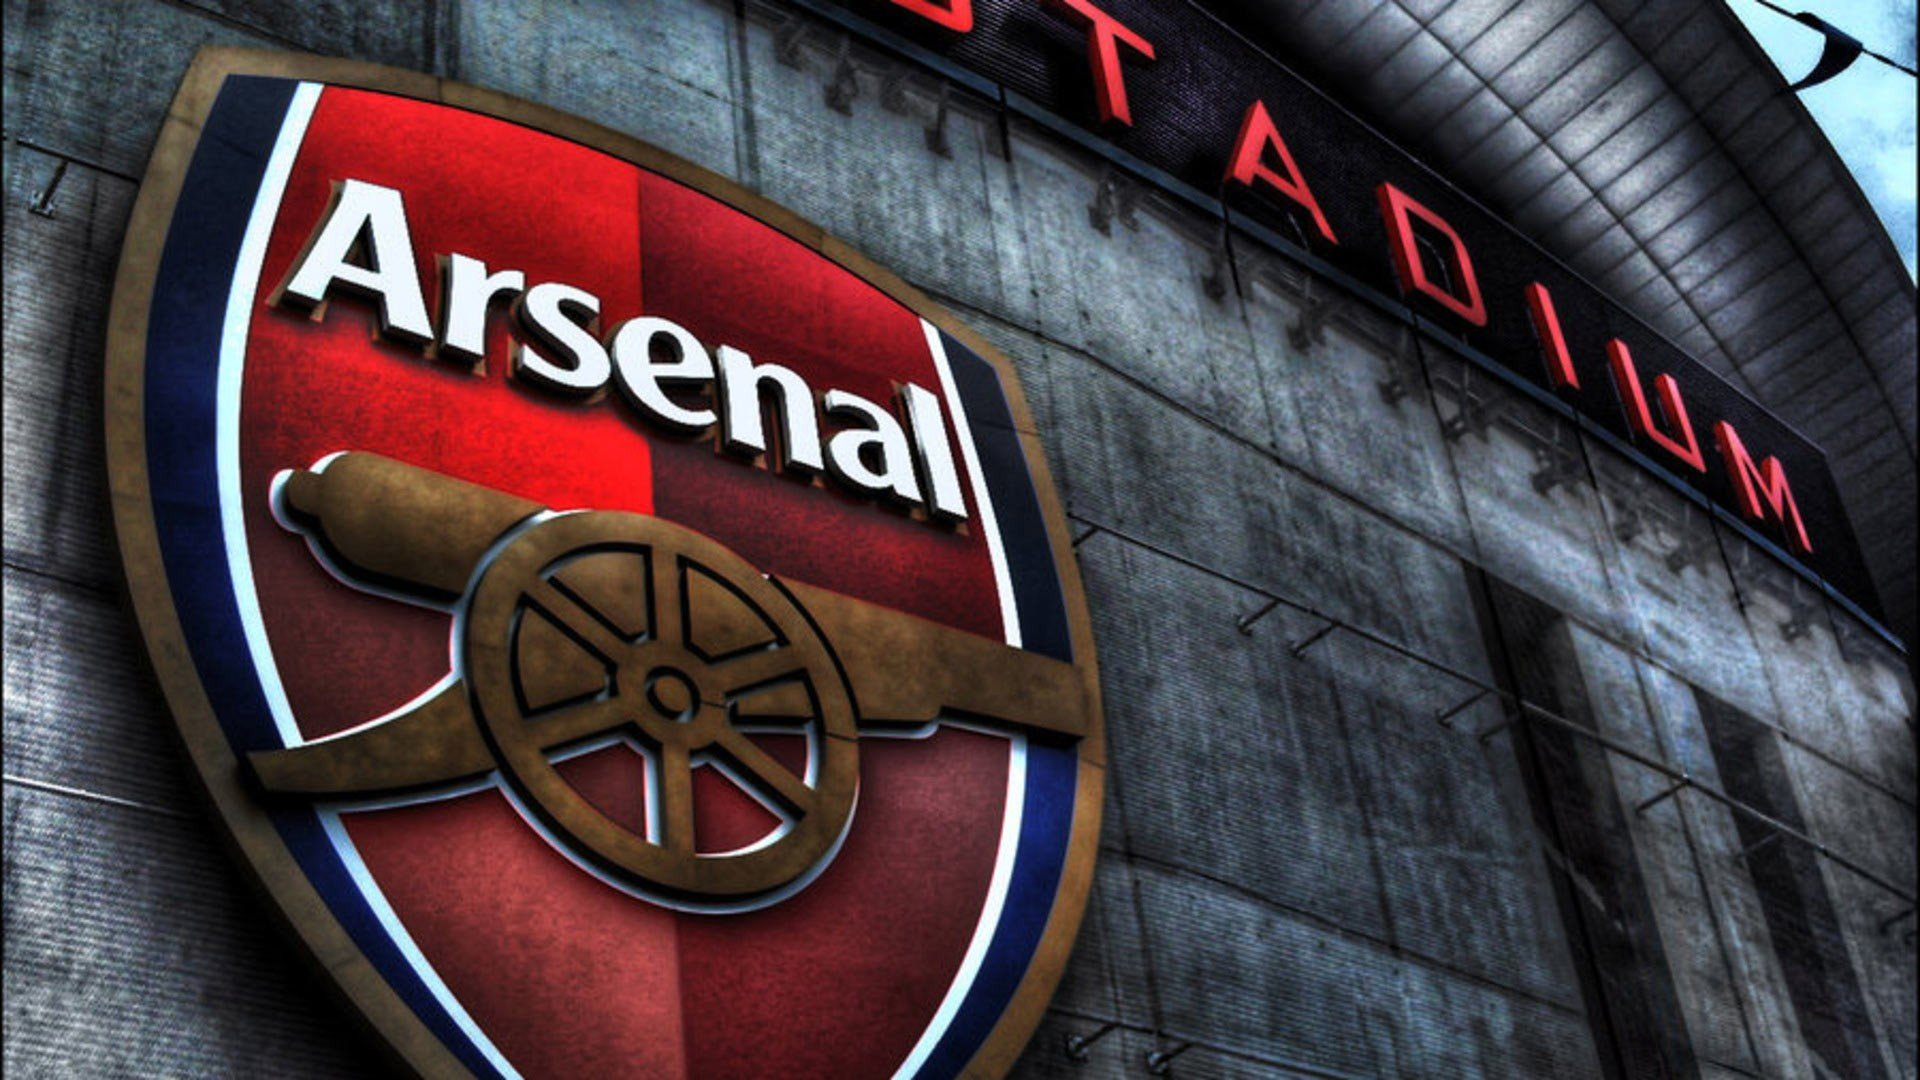 arsenal football club logo wallpaper hd backgrounds for mobile and pc 1920x1080